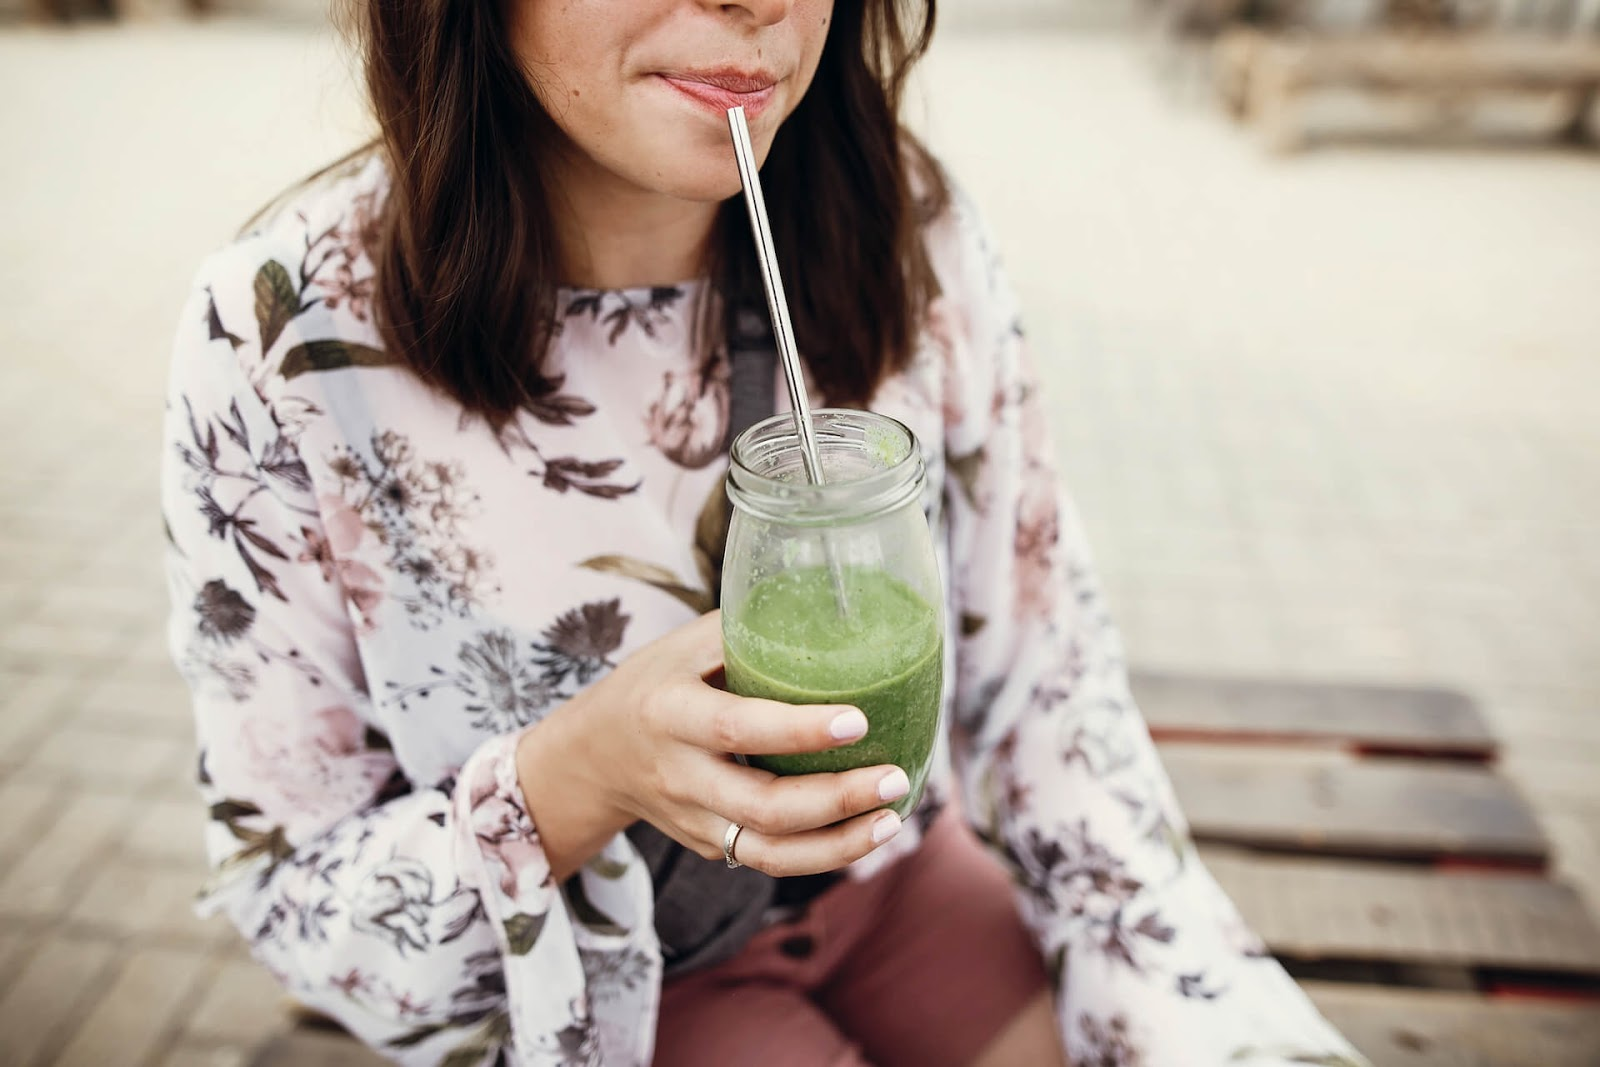 Woman drinking a green smoothie with a metal straw